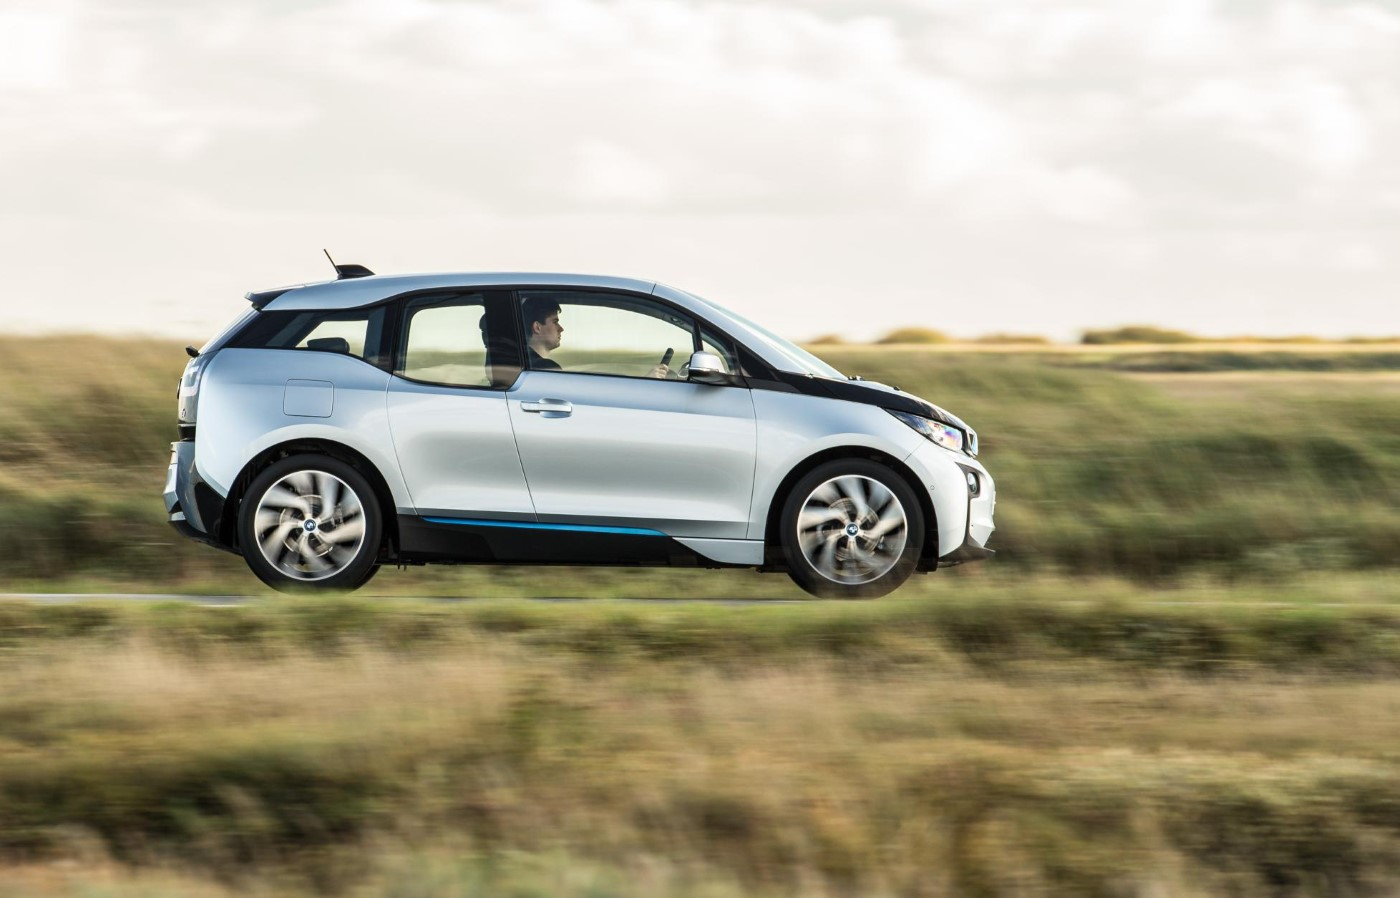 2014 Bmw I3 Electric Car Pure Battery Or Range Extender